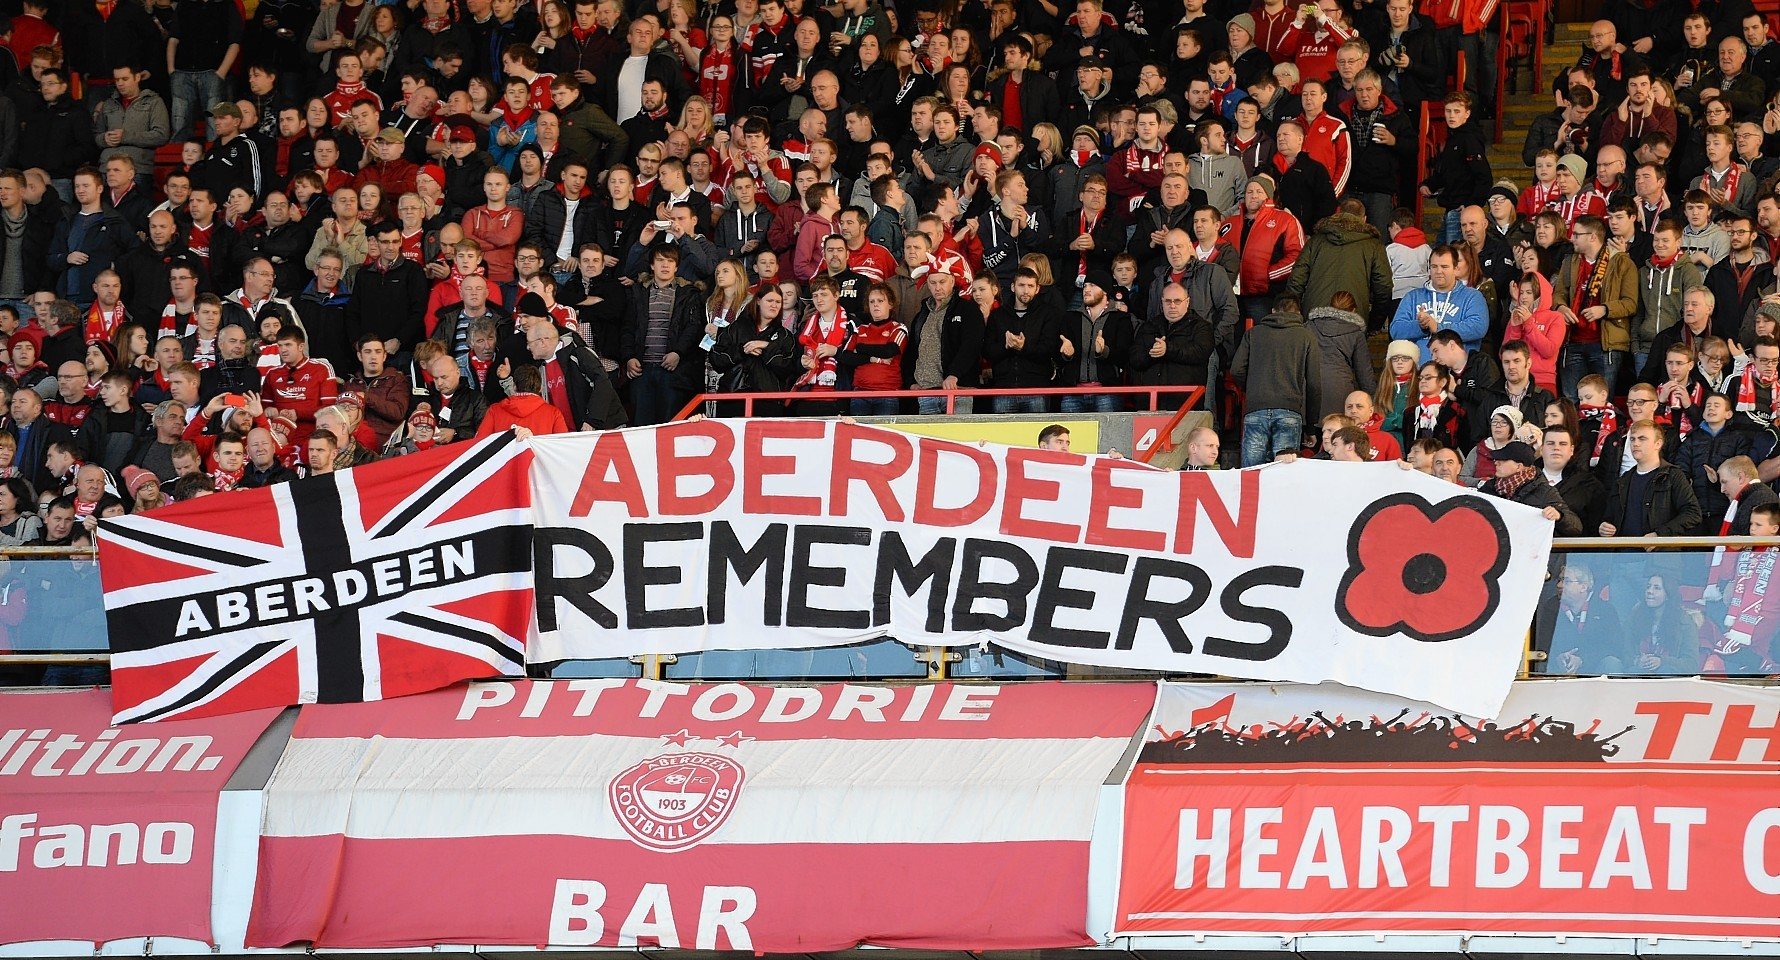 The Dons fans displayed this banner during today's match.